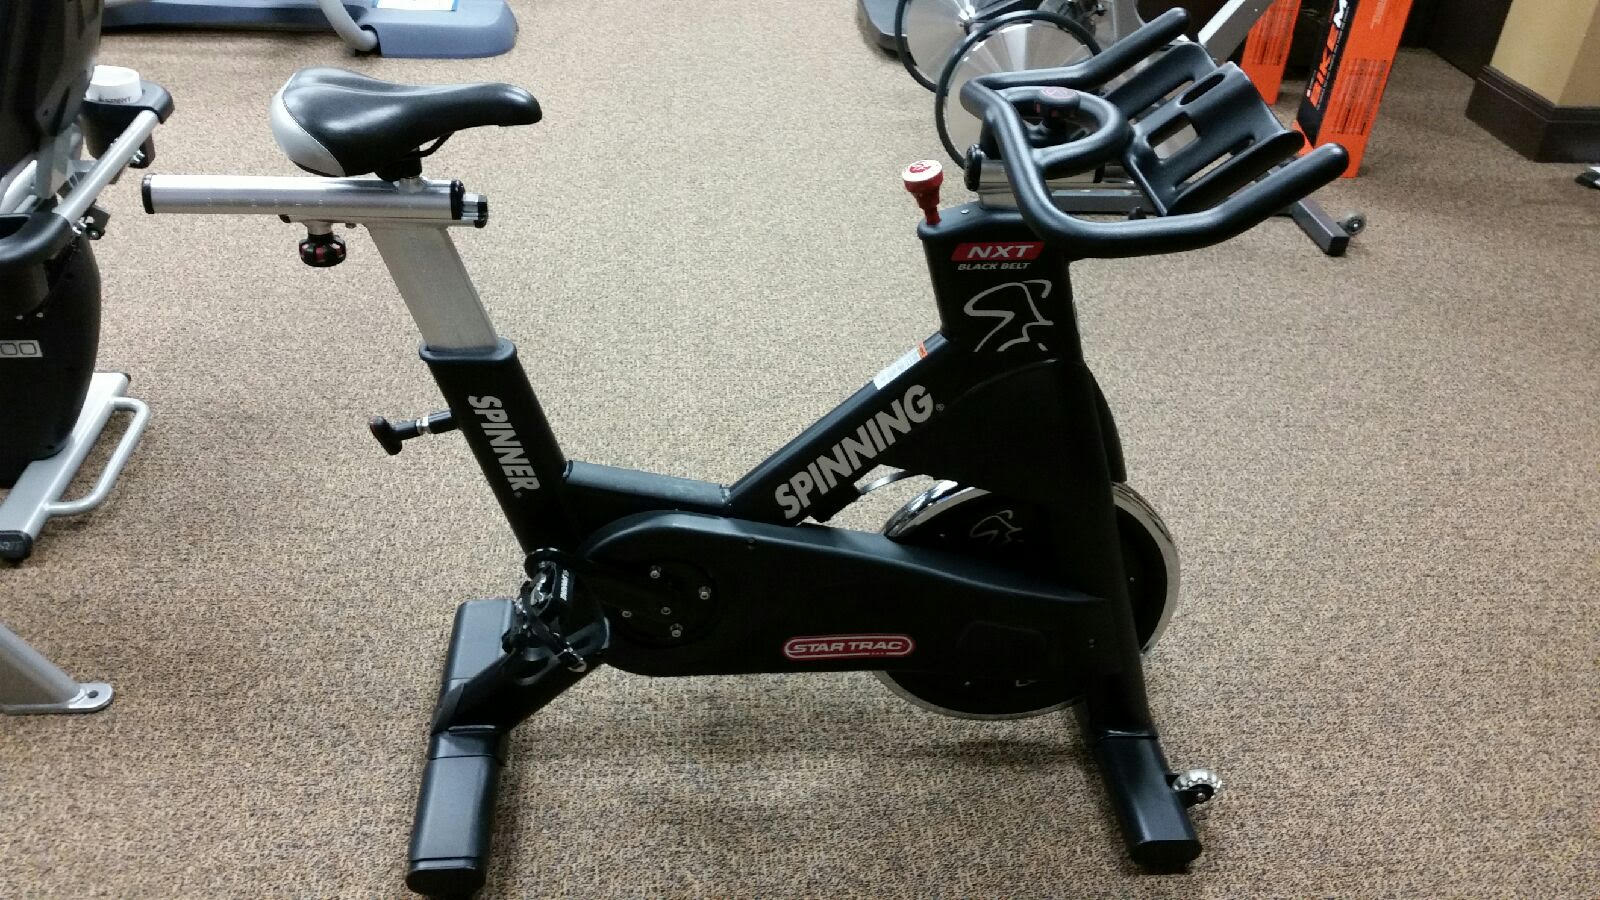 Spin Bikes For Sale >> Used Star Trac Nxt Spin Bikes